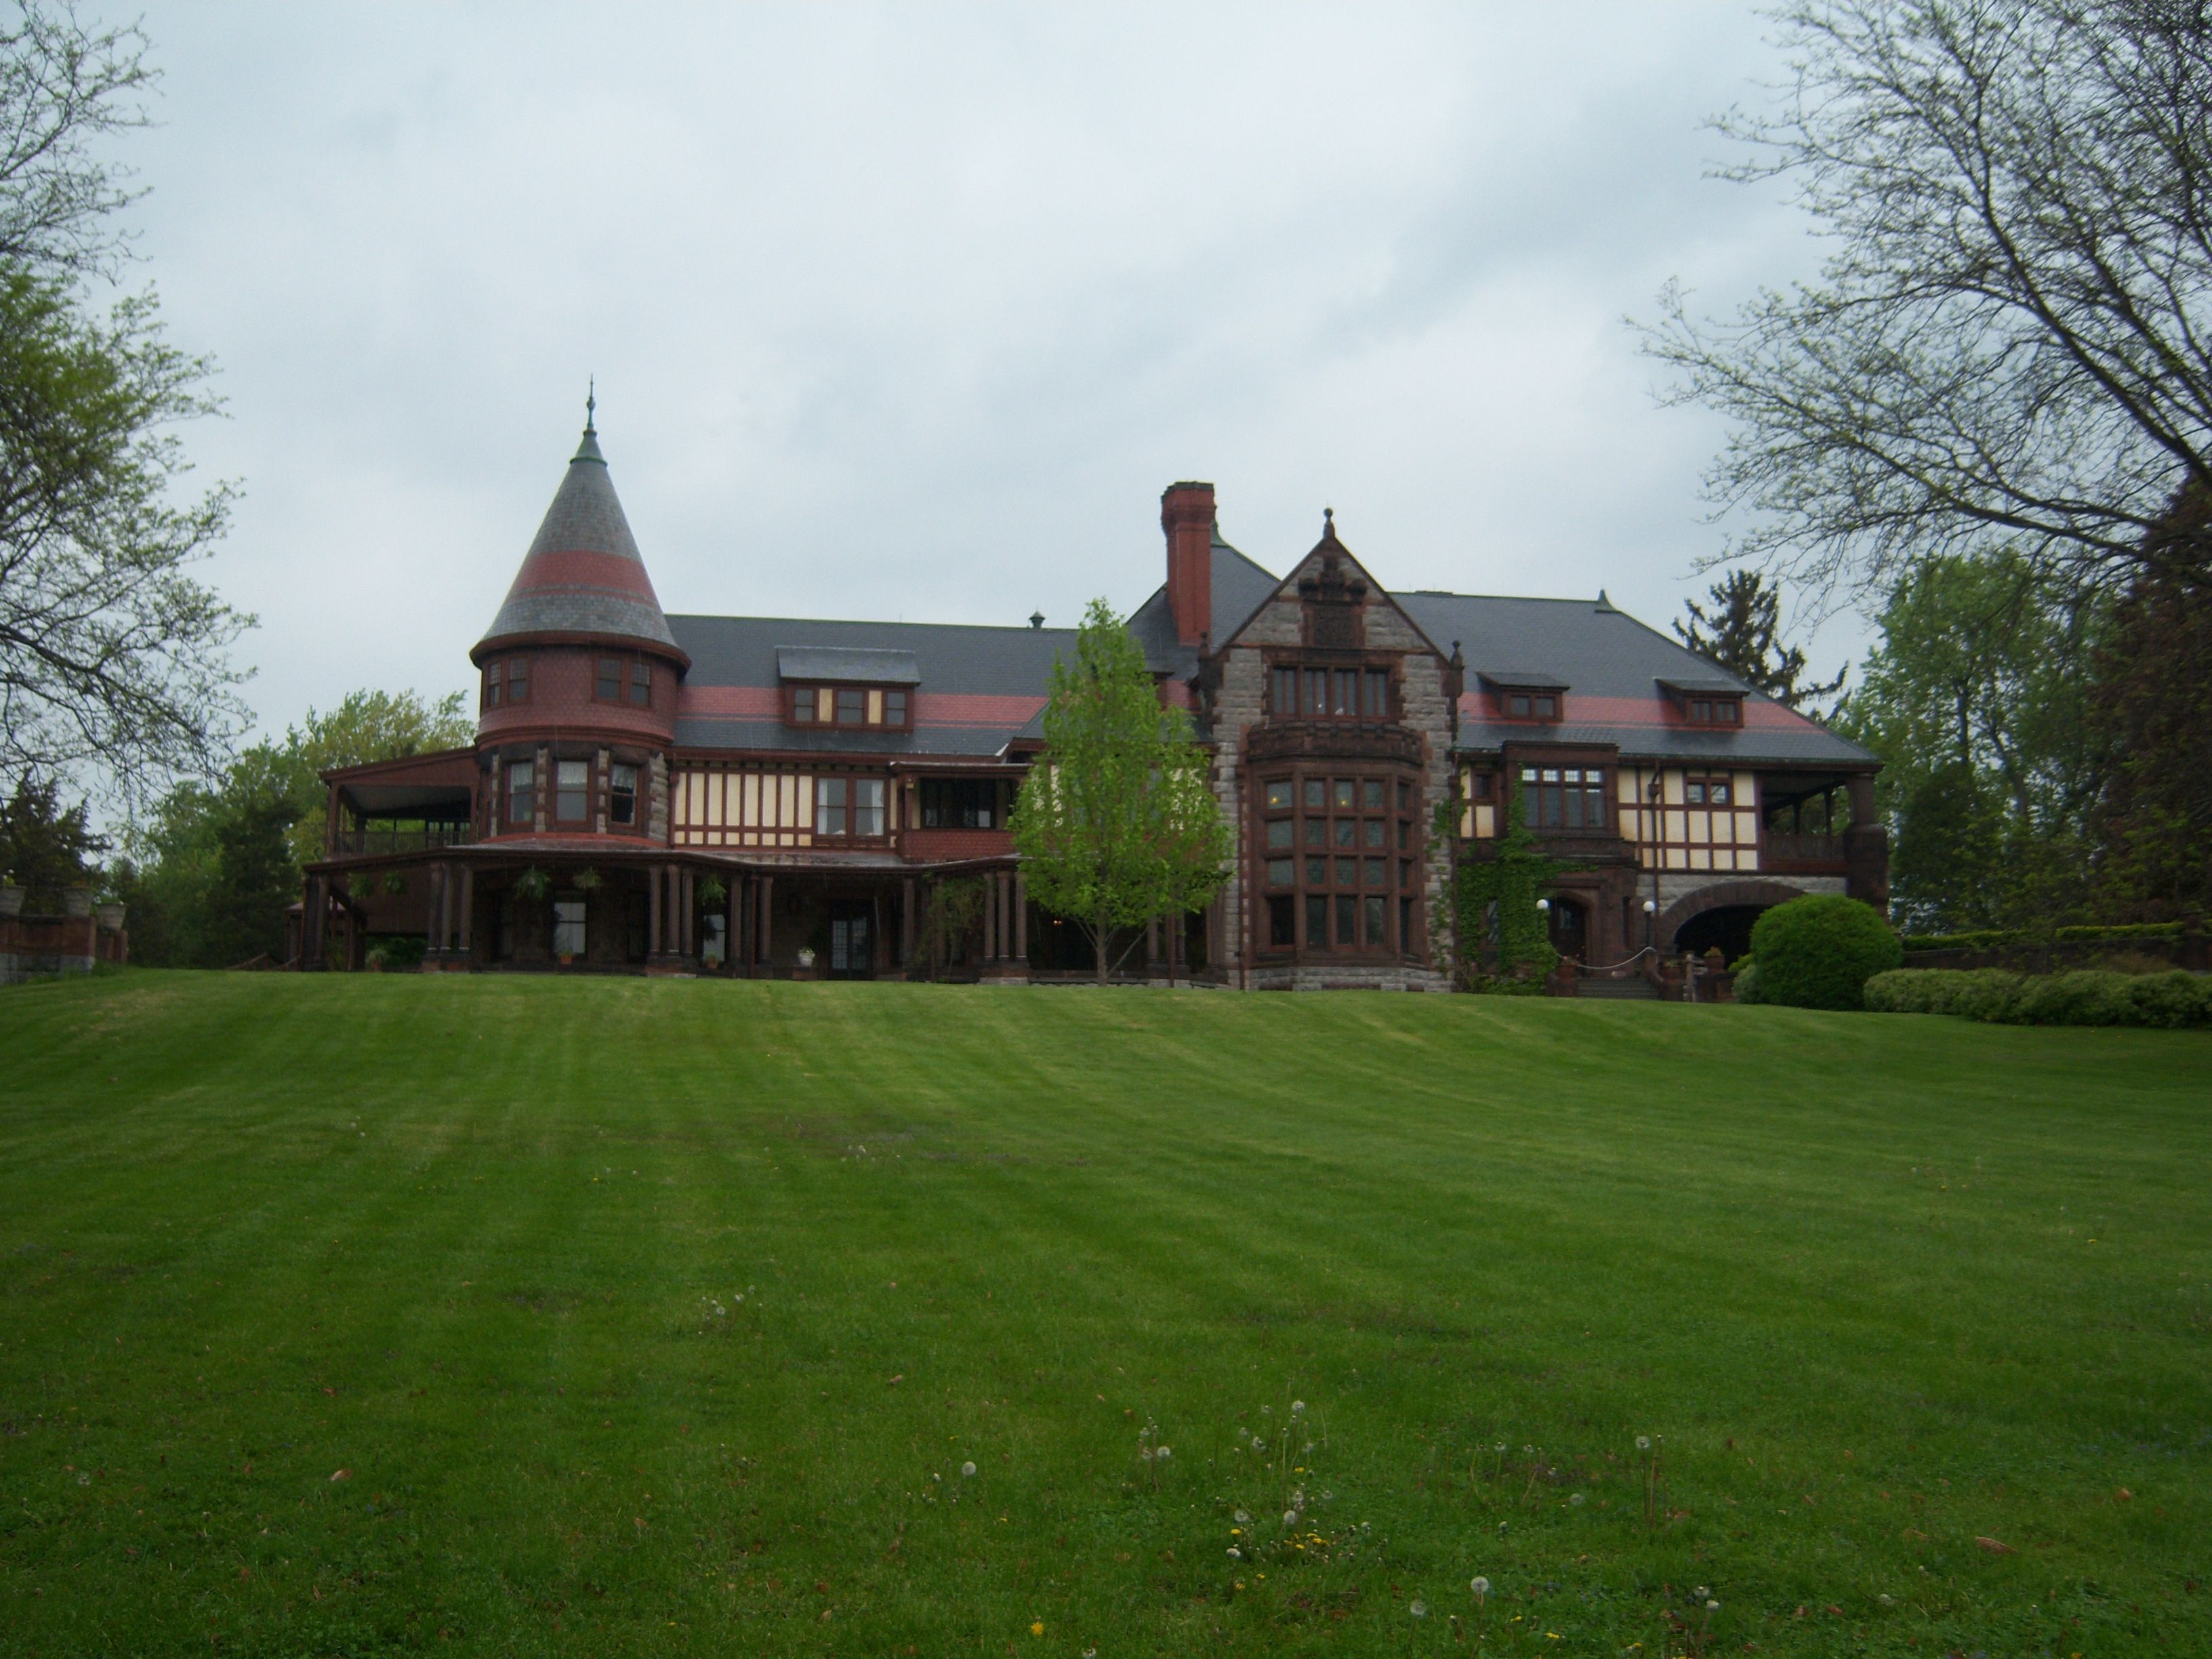 sonnenberg gardens and mansion is a 52 acre histork state park